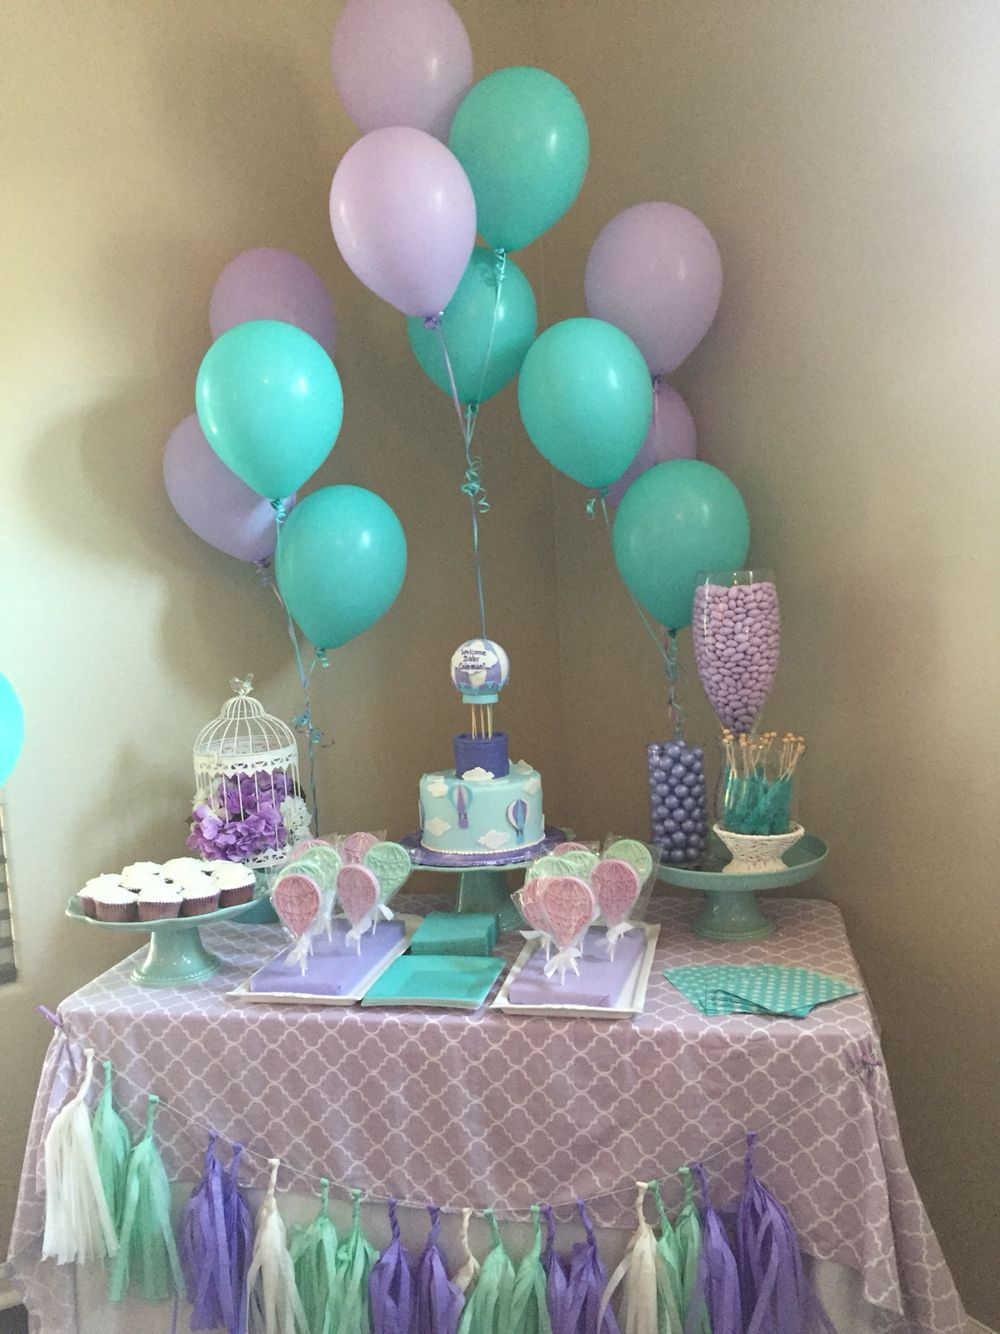 First Girl, Lavender Baby Showers, Purple Baby Showers, Party Themes, Baby  Shower, Pastel Purple, Baby Shower Decorations, Cake Table, Simple Designs